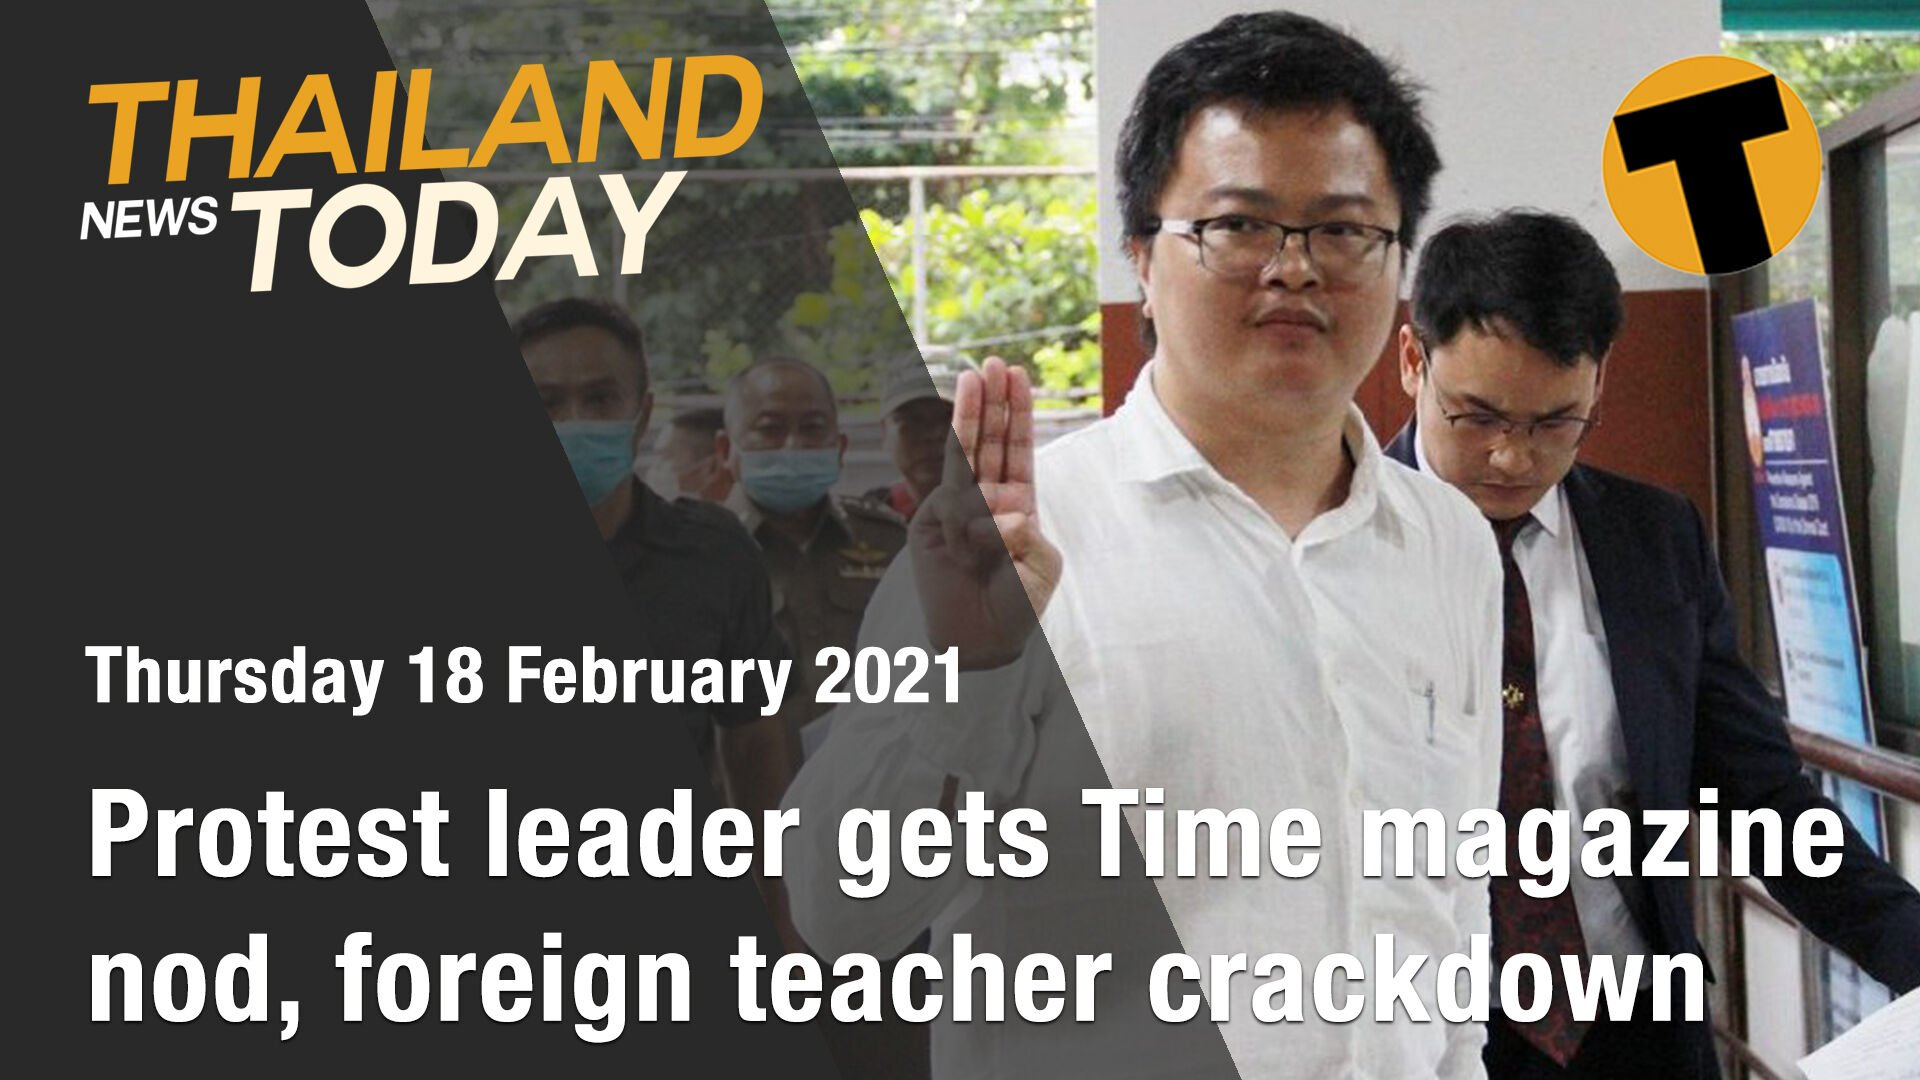 Thailand News Today | Protest leader gets Time magazine nod, foreign teacher crackdown | February 18 | The Thaiger